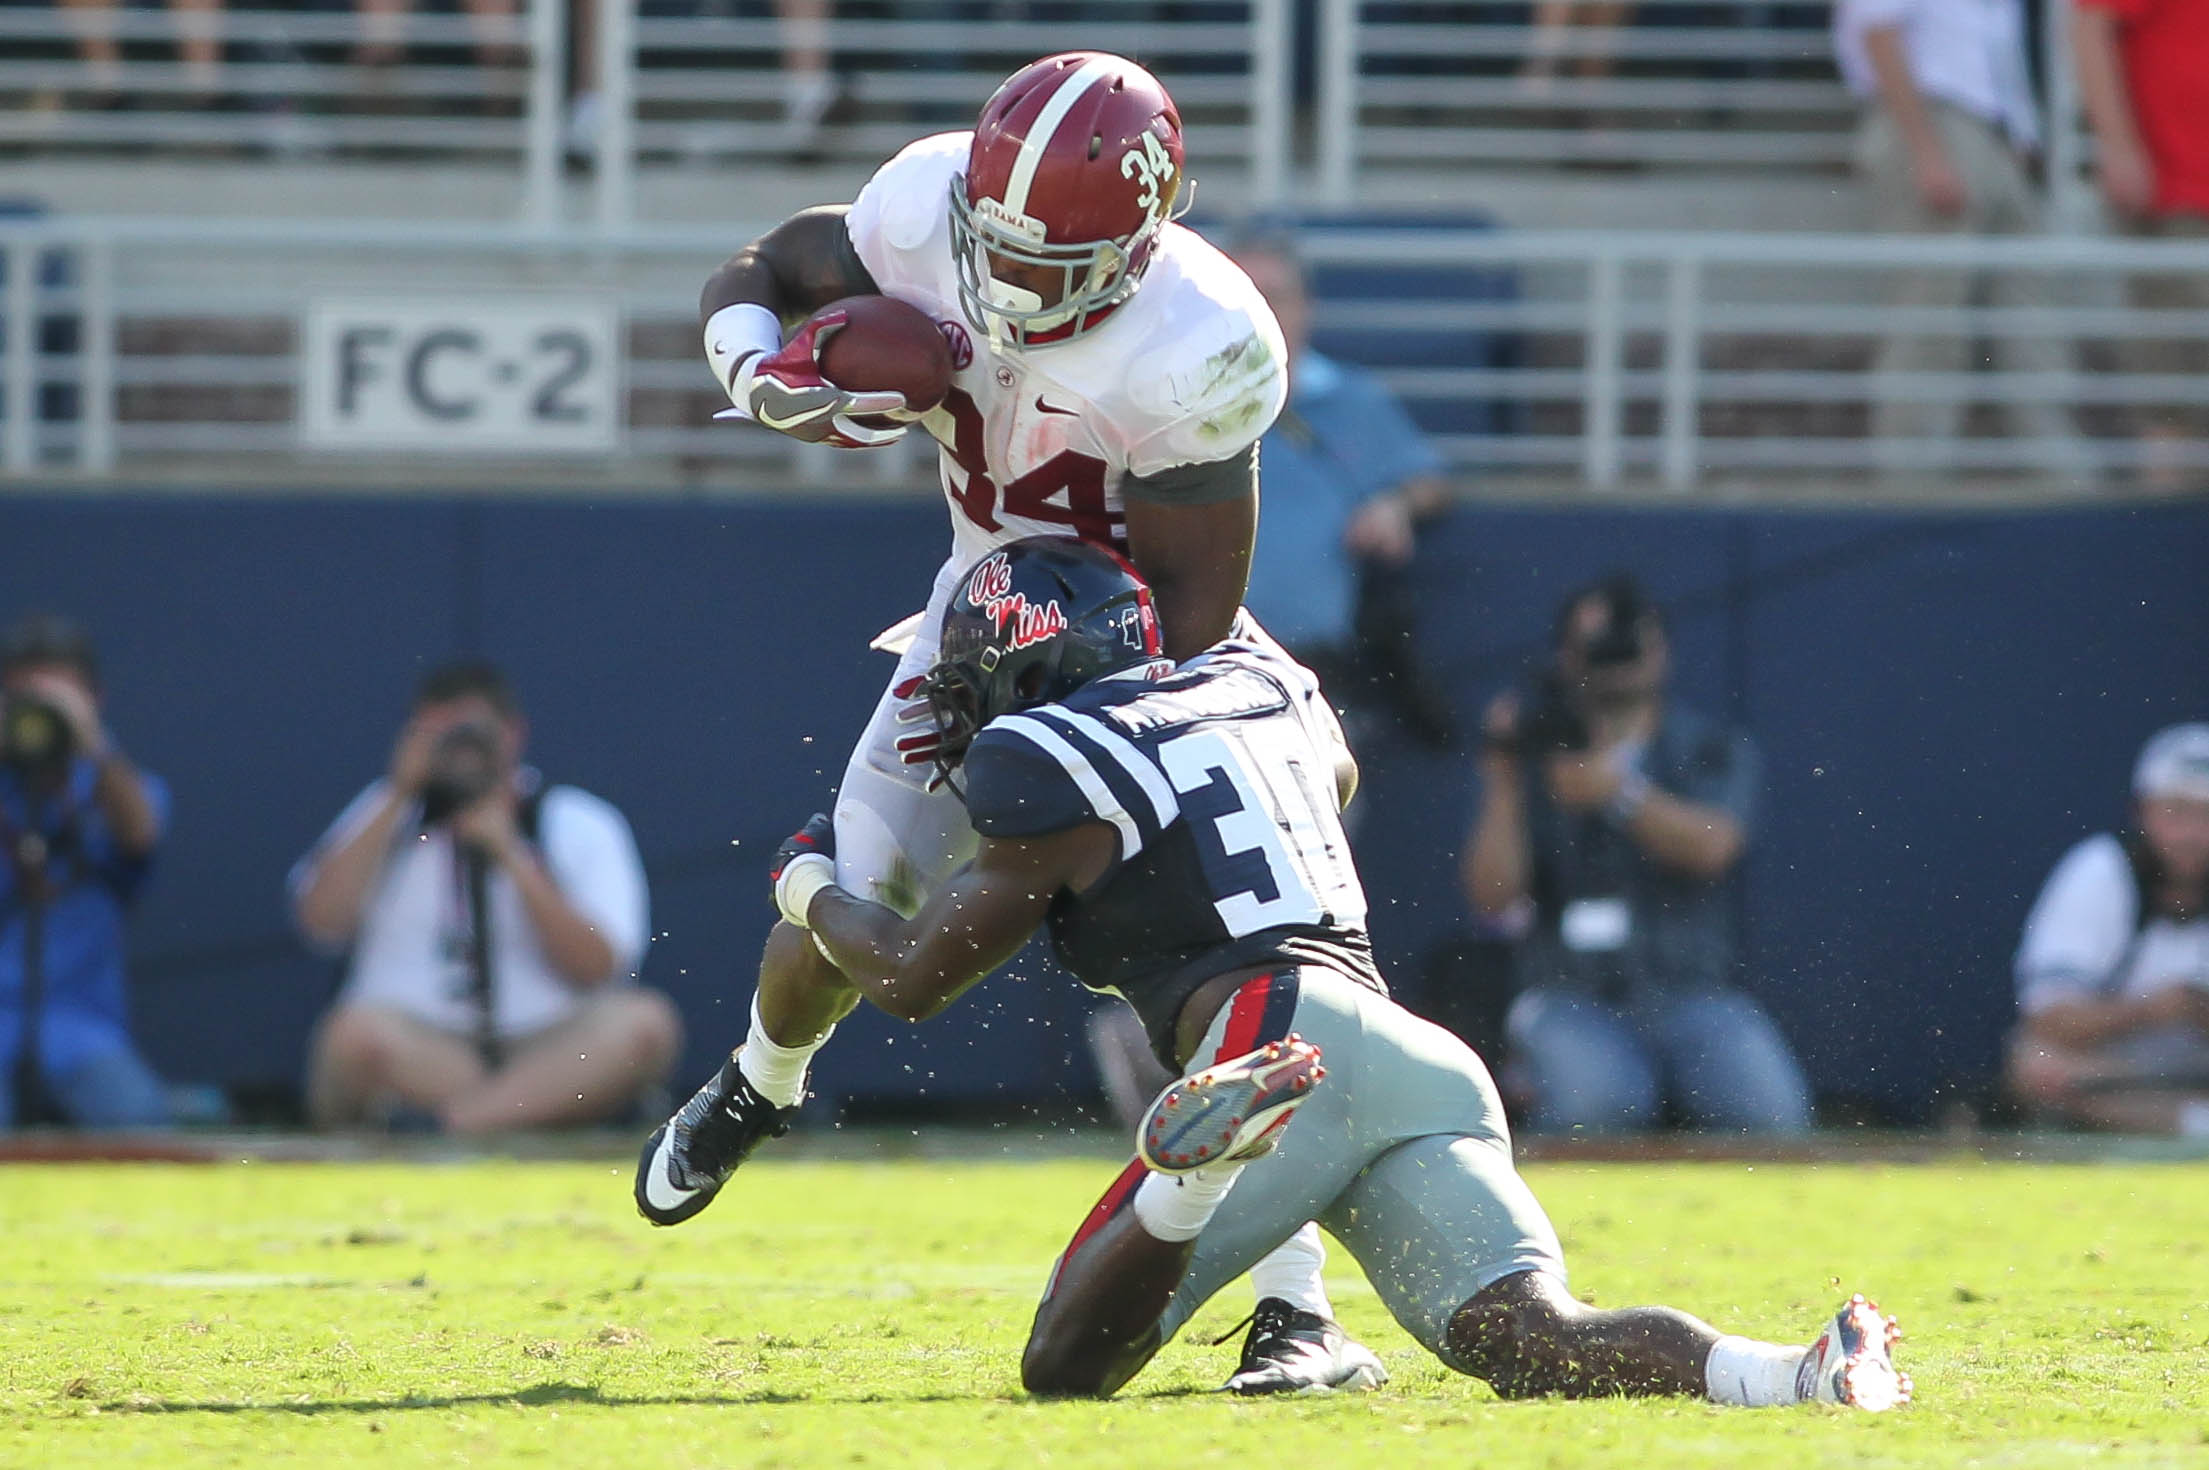 Alabama running back Damien Harris (34) tries to avoid the tackle from Mississippi defender A.J. Moore (30) during their NCAA football game at Vaught-Hemingway Stadium in Oxford, Miss., Saturday, Sept. 17, 2016. Alabama won 48-43. (James Pugh/The Laurel C